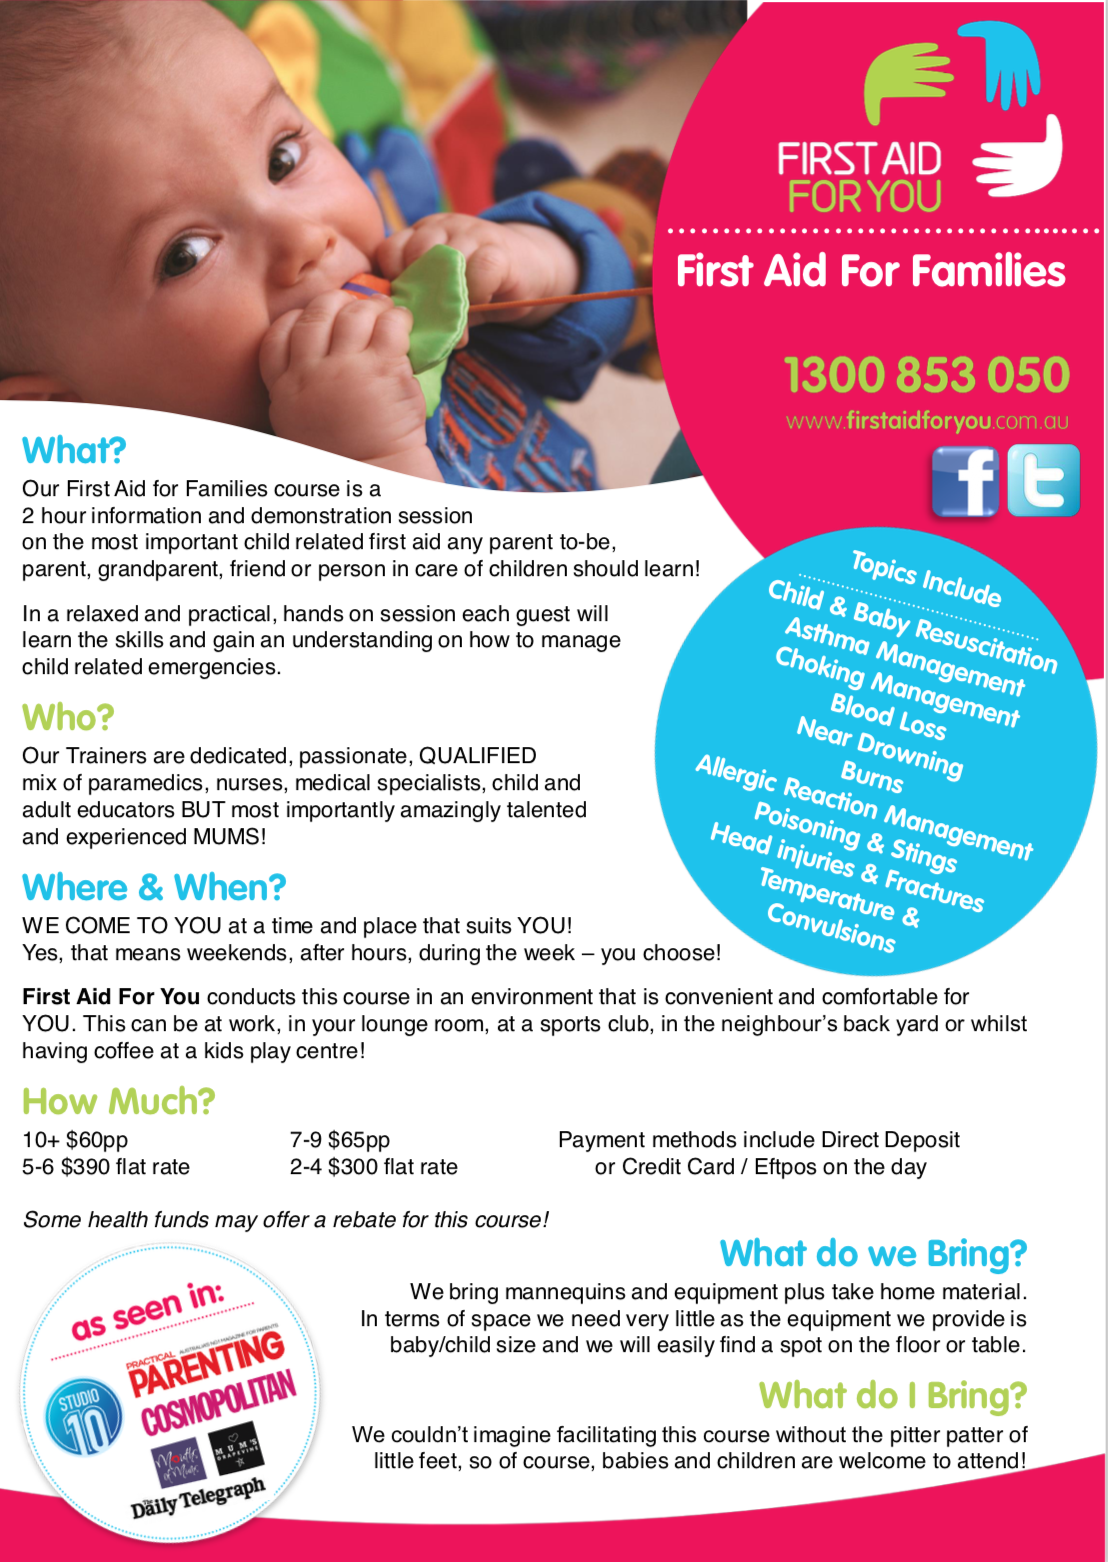 Image of First Aid For Families Fact Sheet by First Aid For You